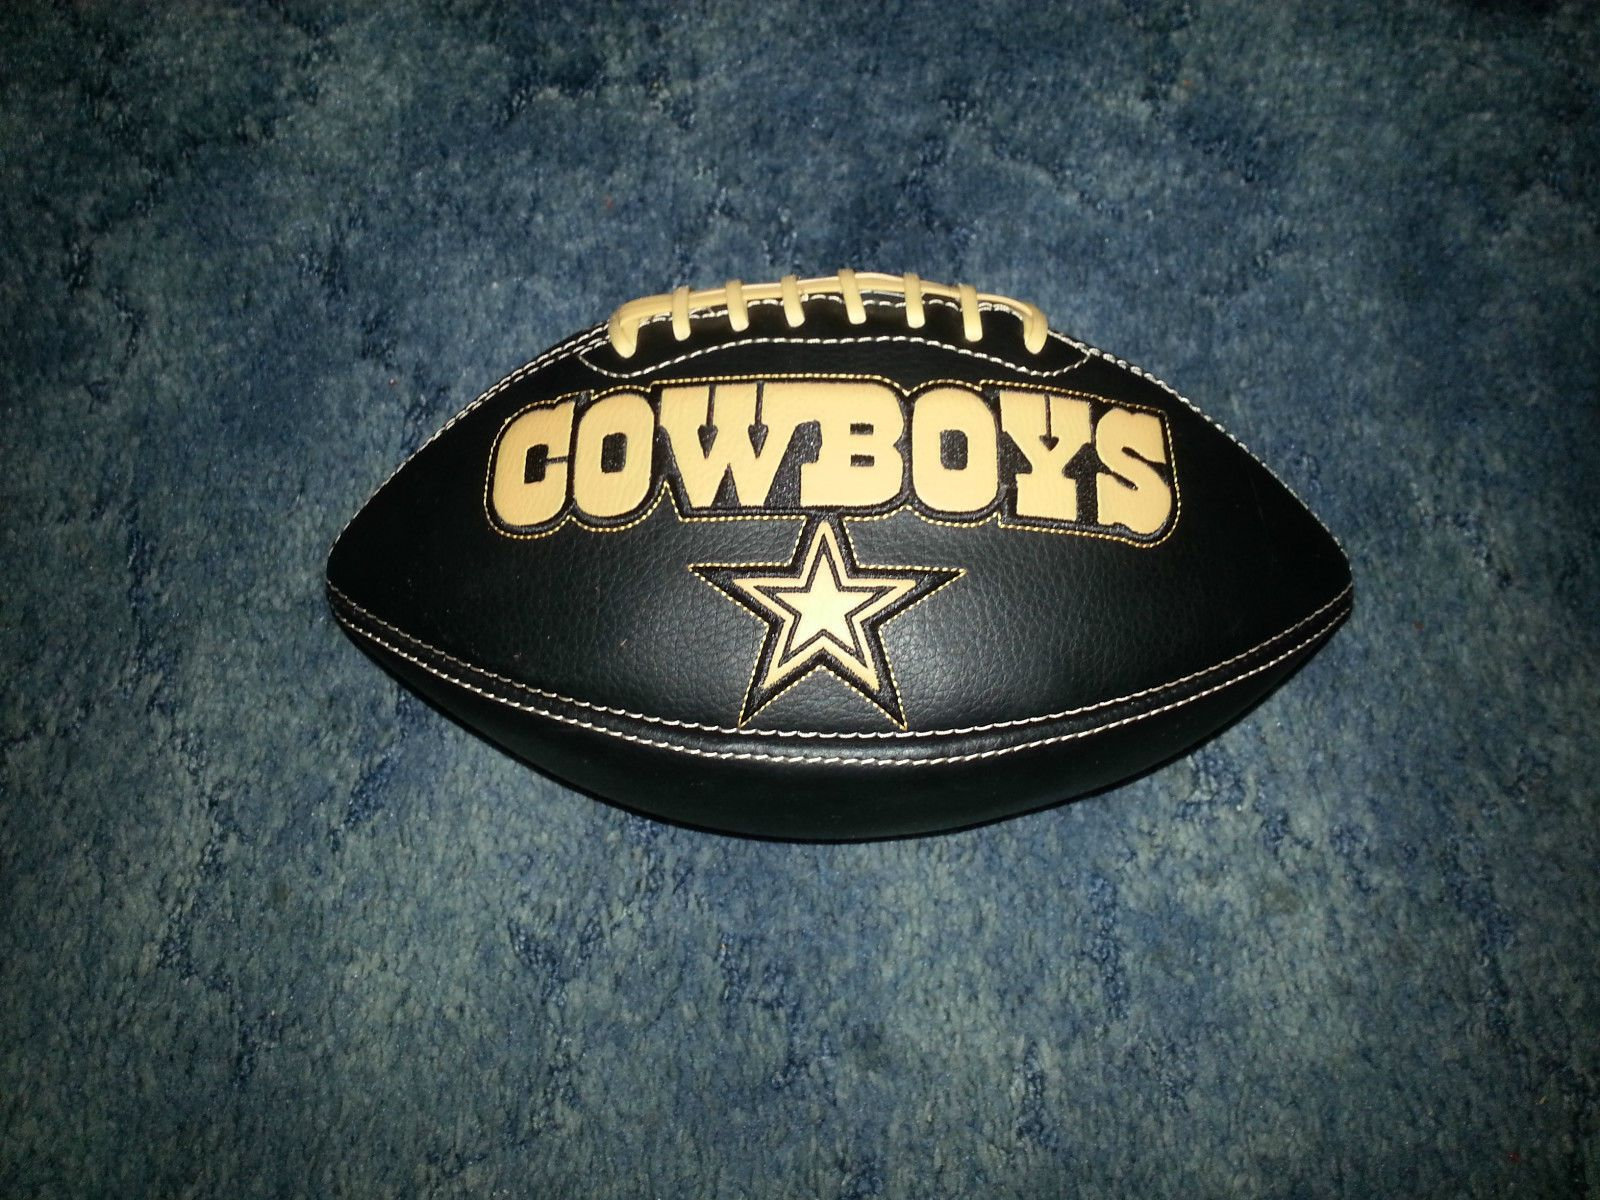 Dallas Cowboys Team NFL FootBall Team Logo Collectible Football ...